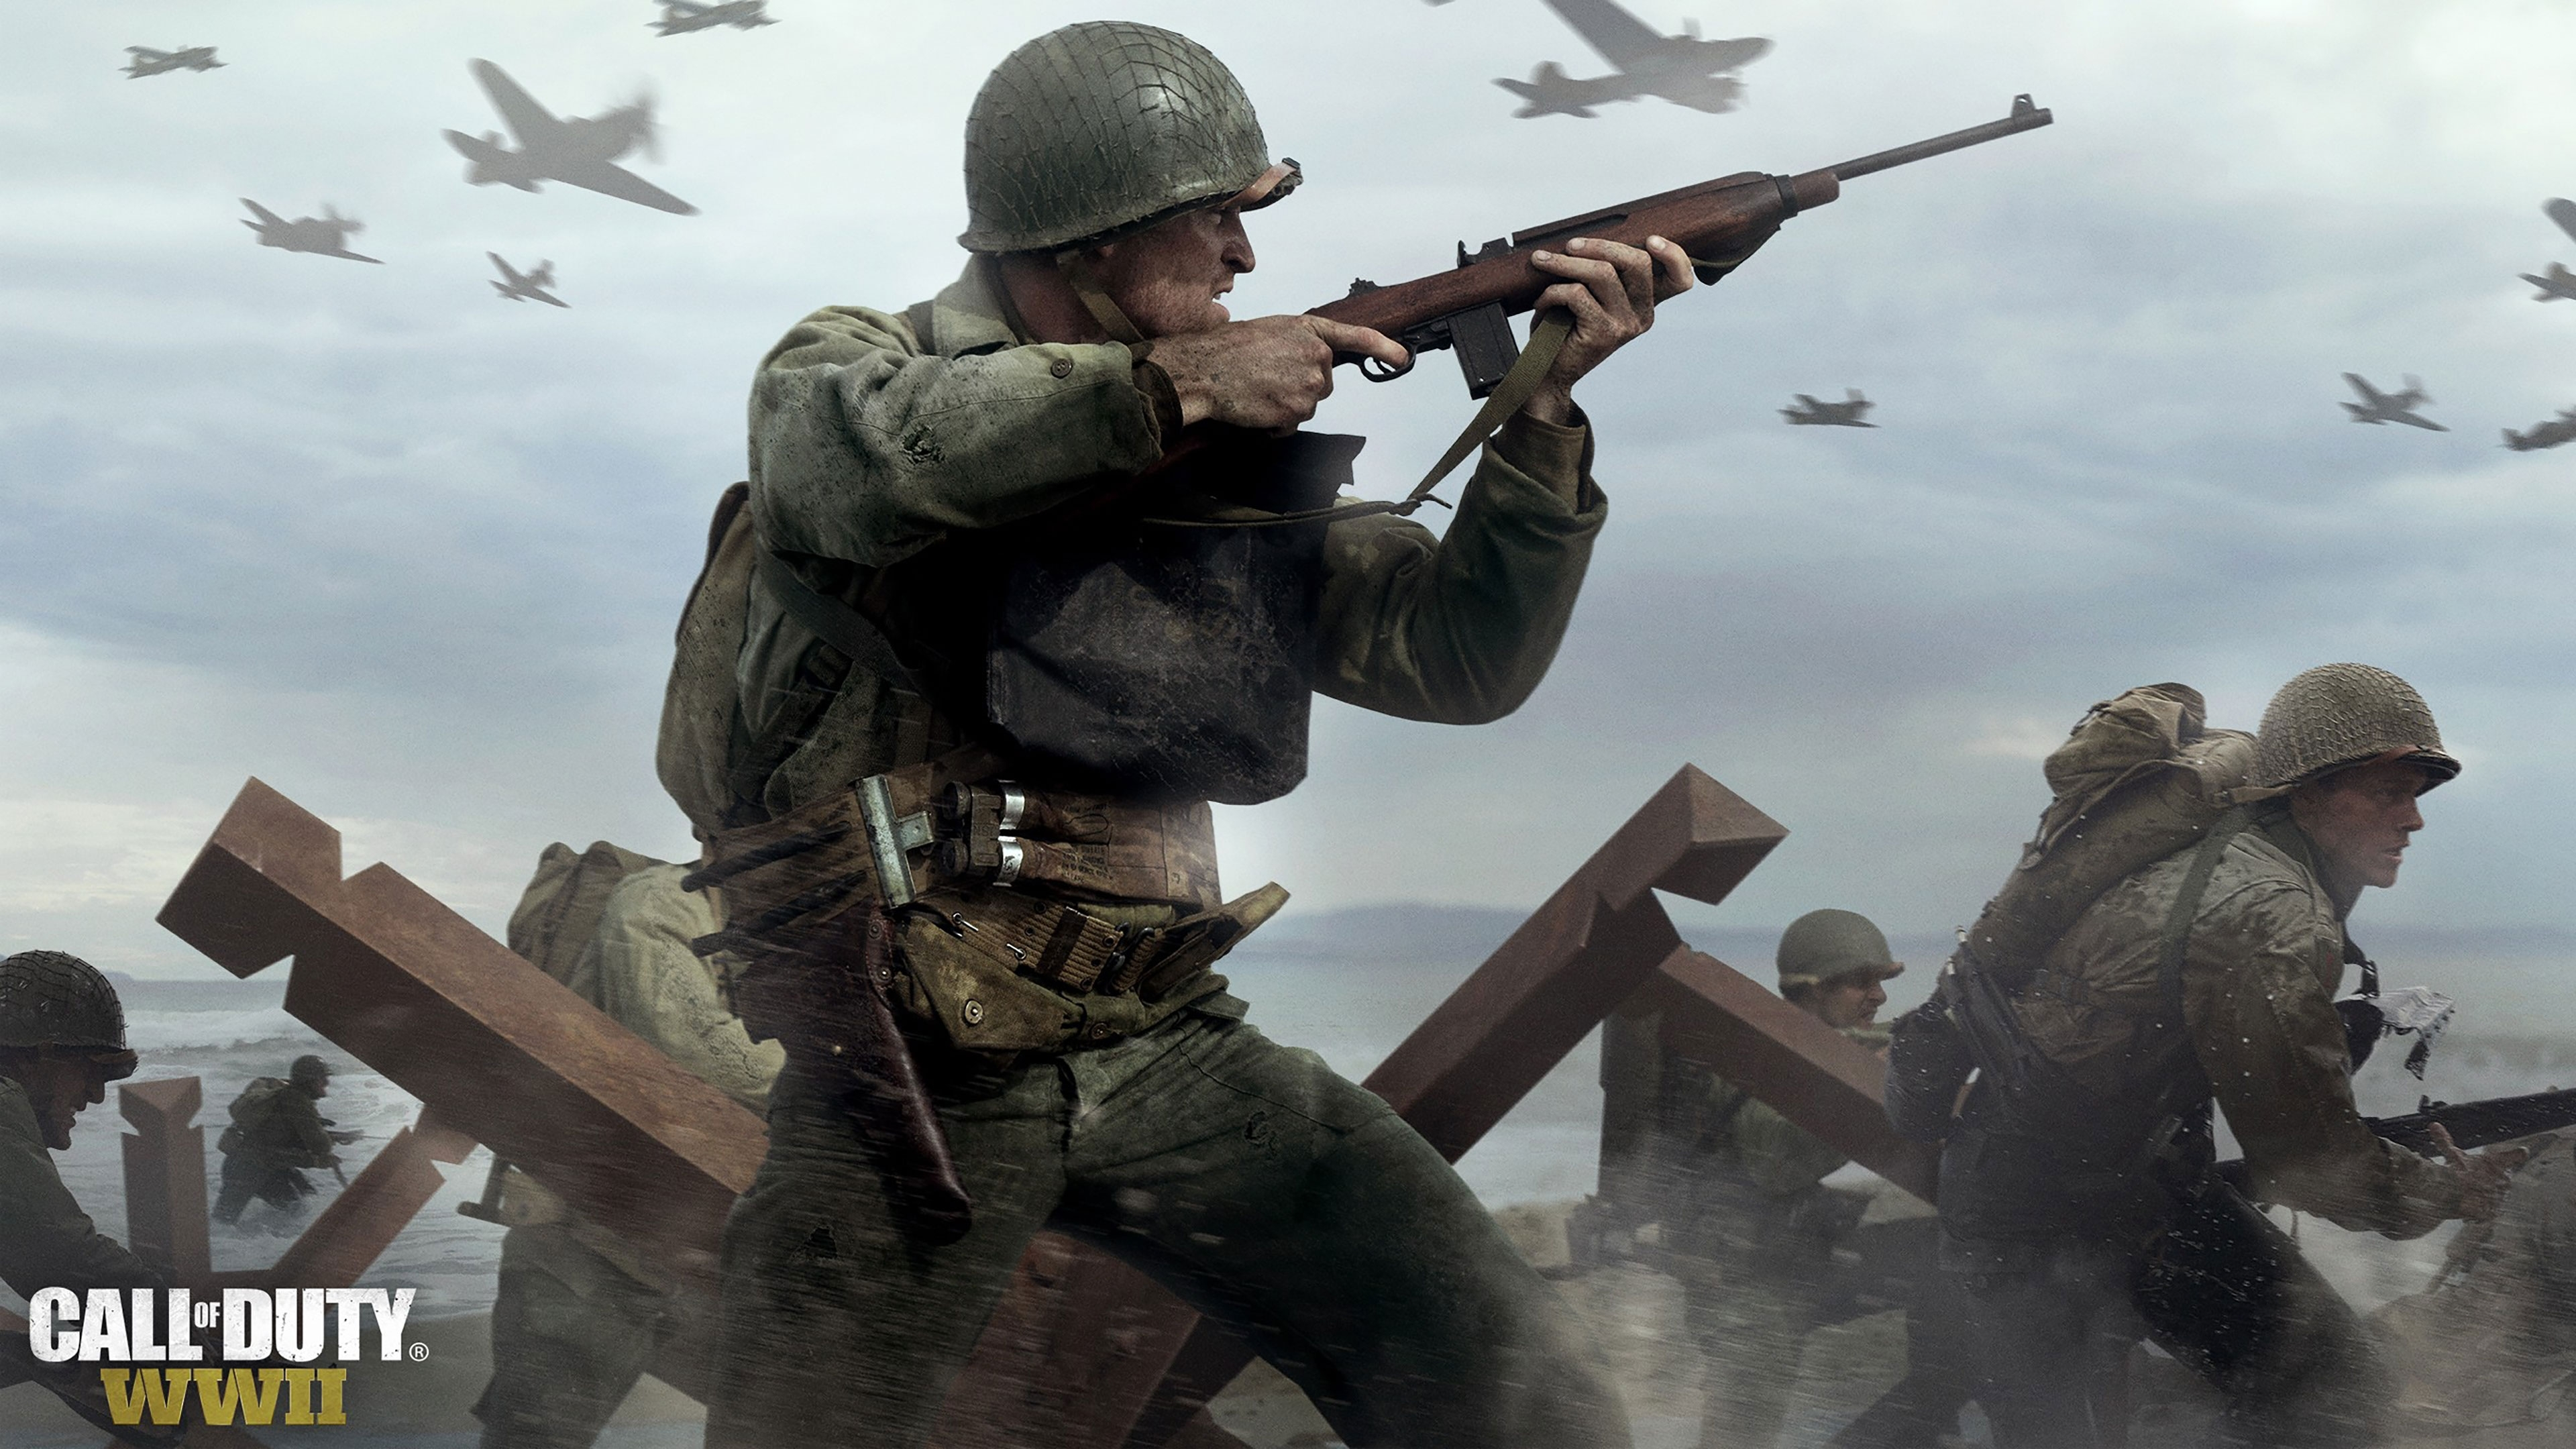 call of duty wwii wallpapers in ultra hd | 4k